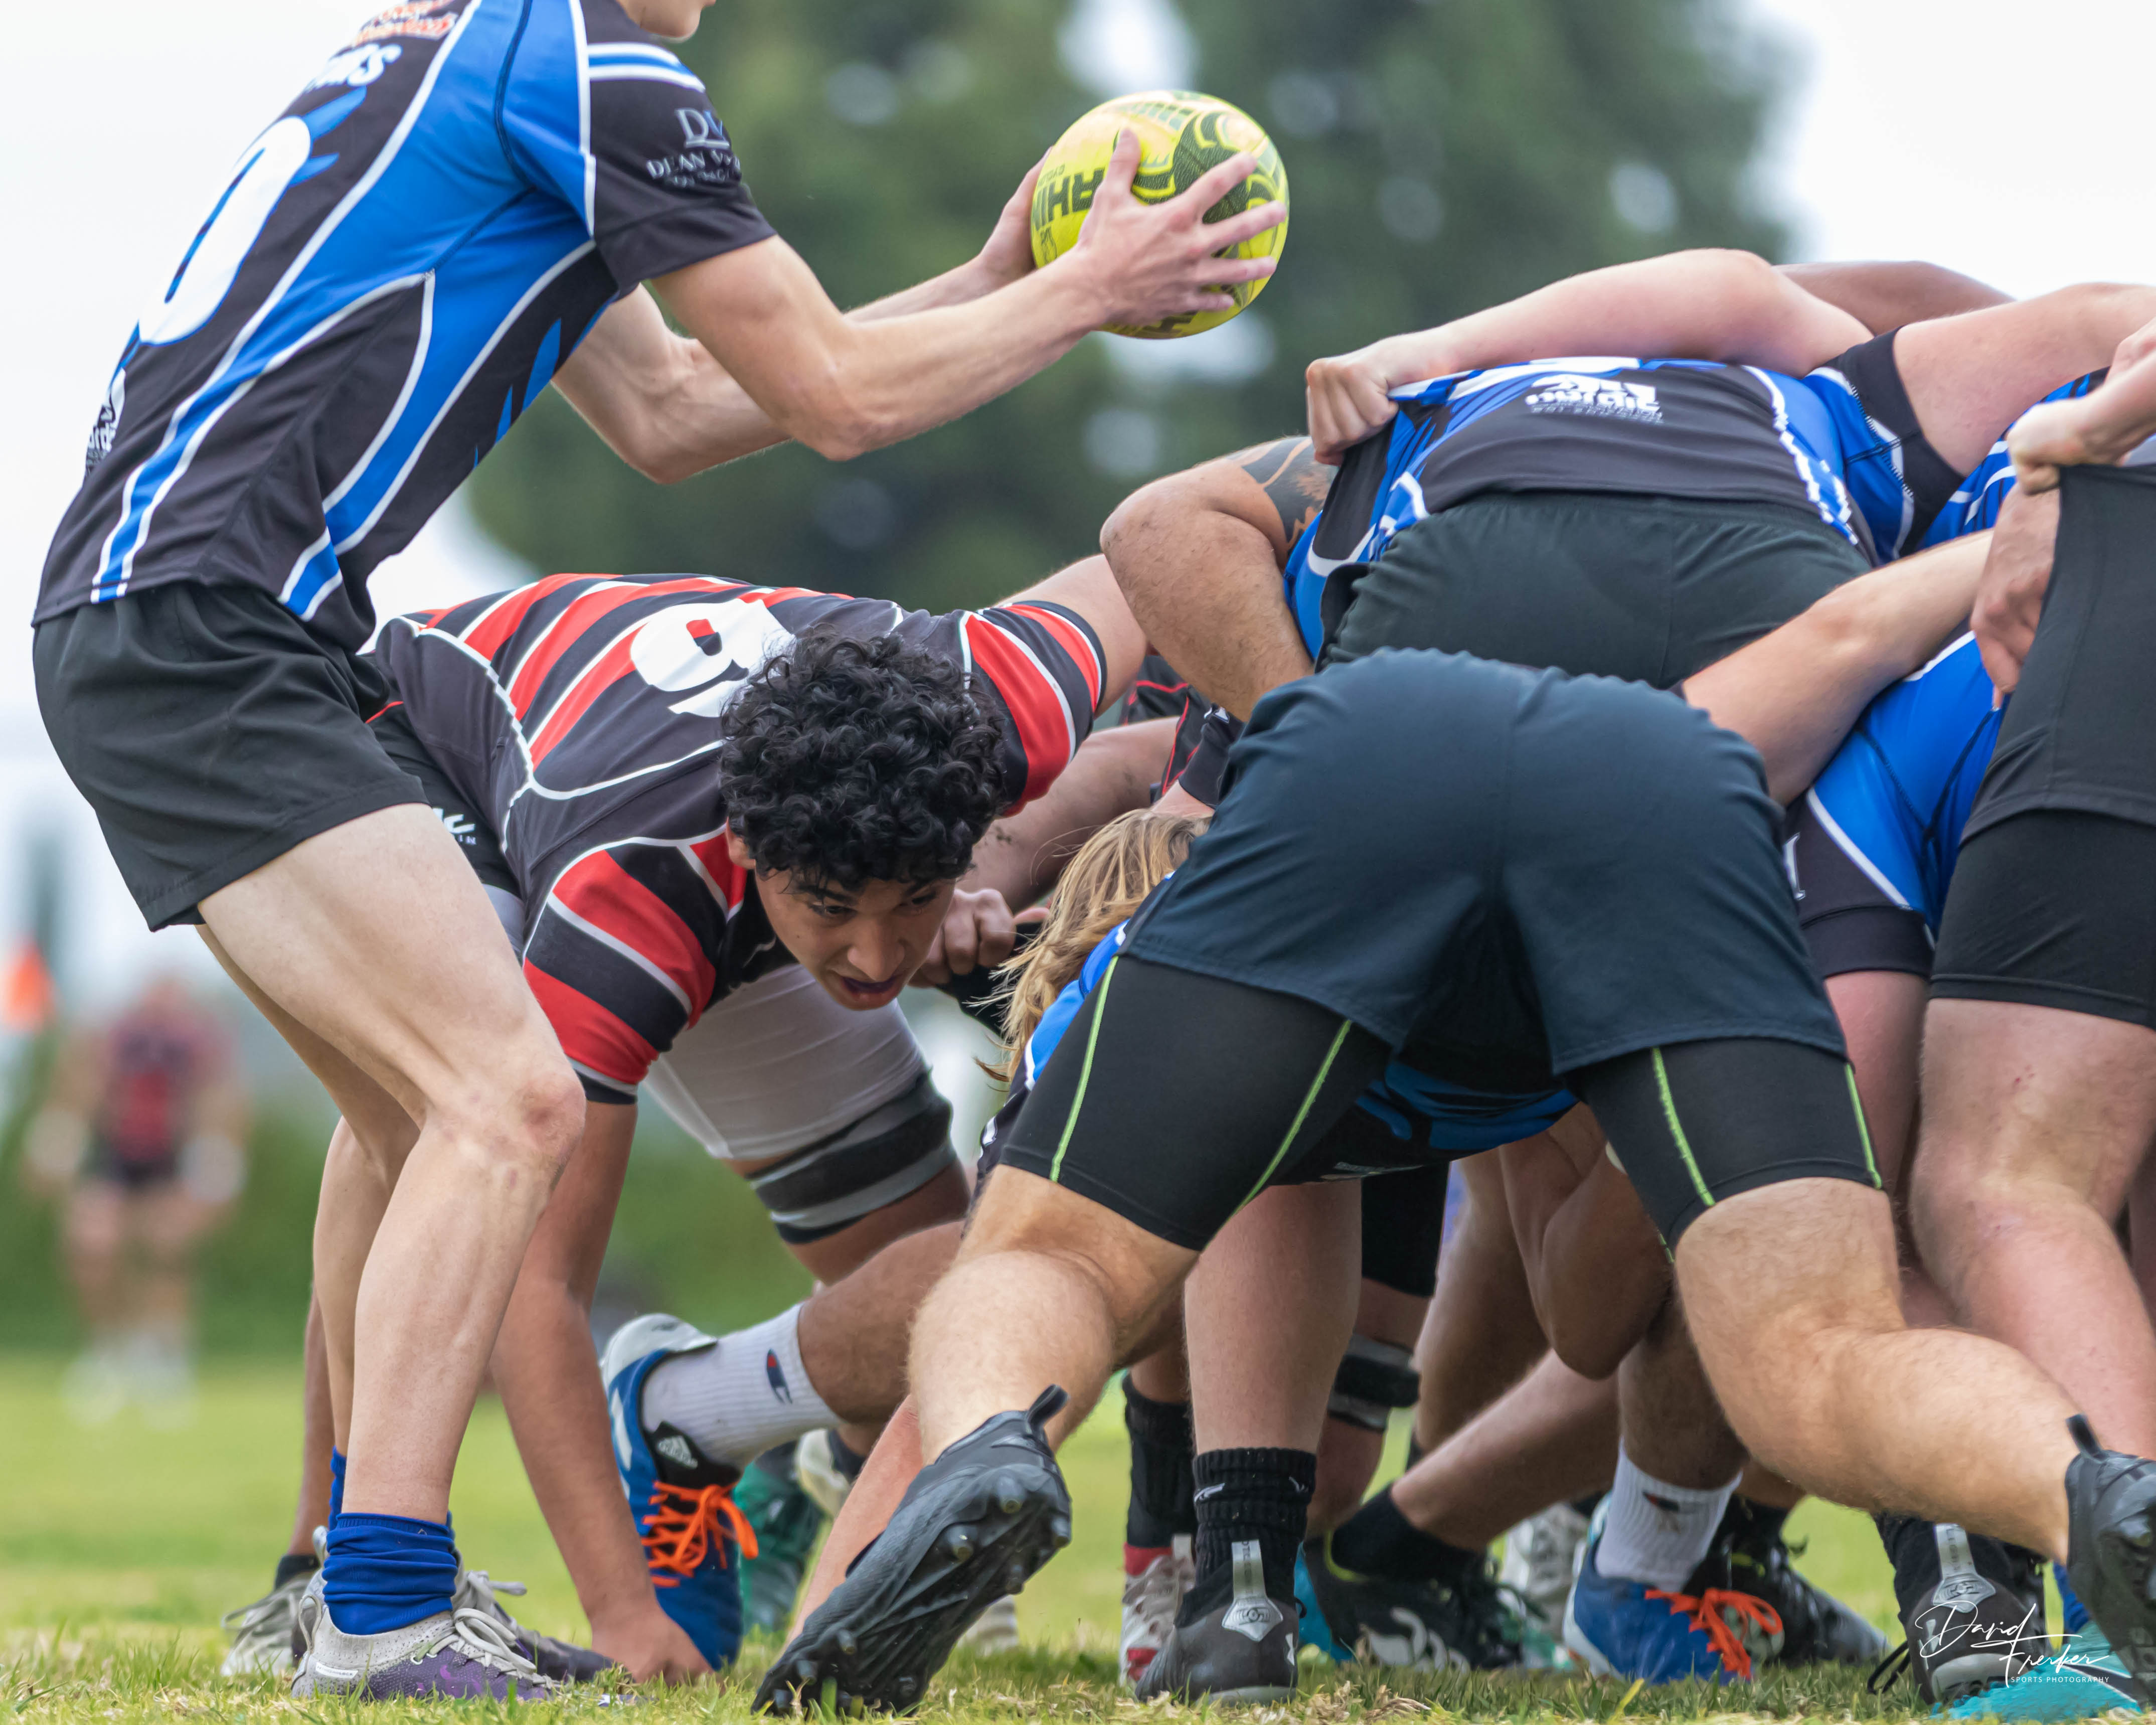 LaJollaRugby33